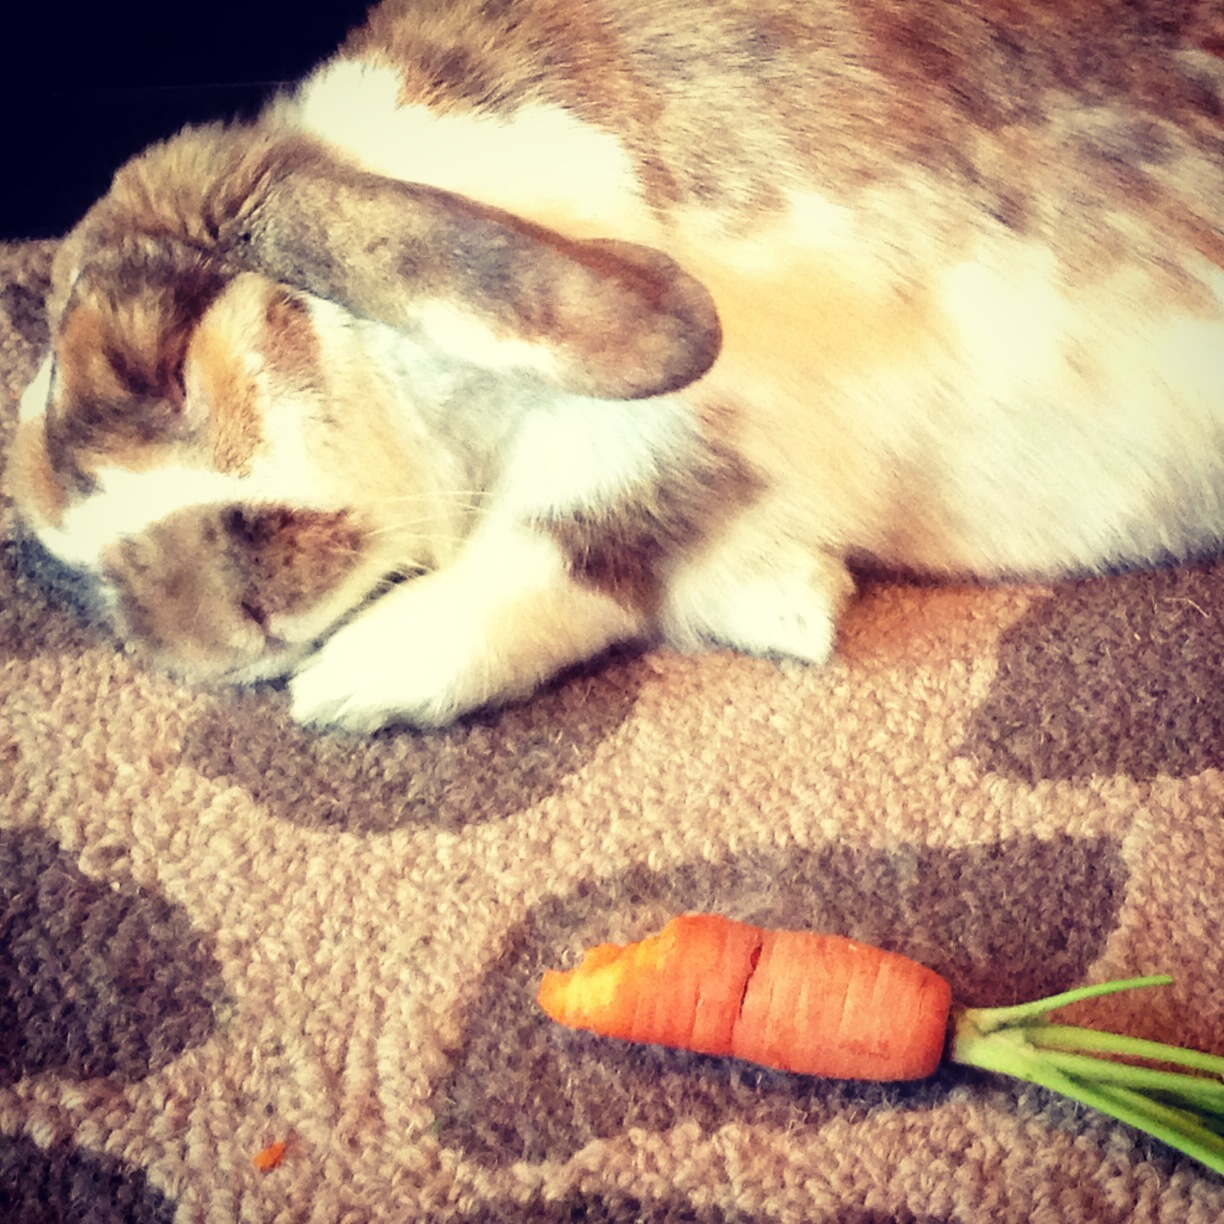 Sleeping Bunny Dreams of Carrots